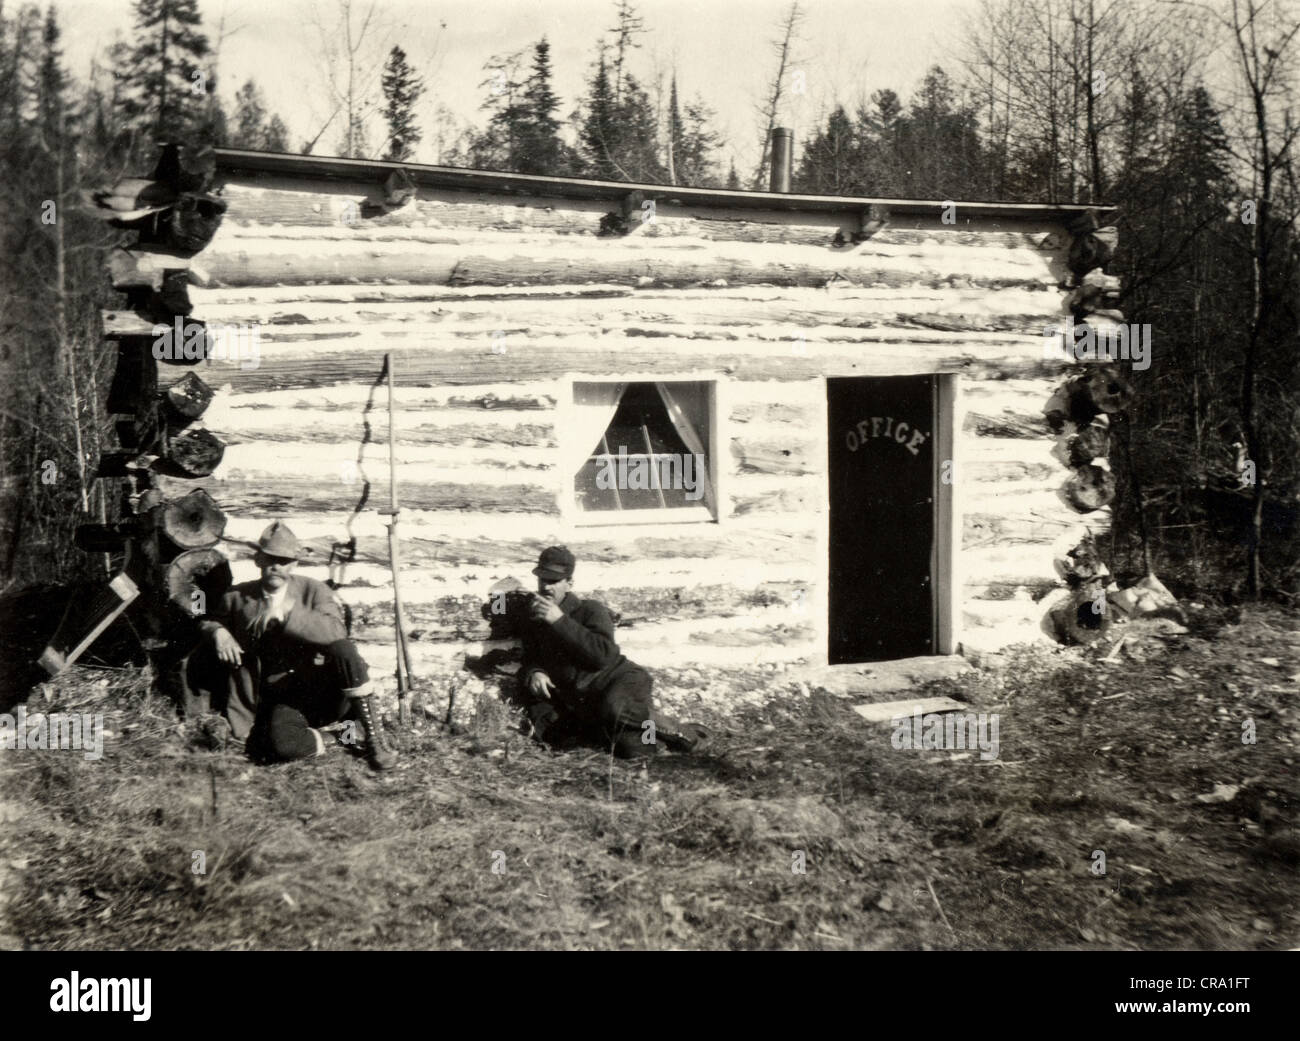 Two Men at Crude Log Cabin Office - Stock Image